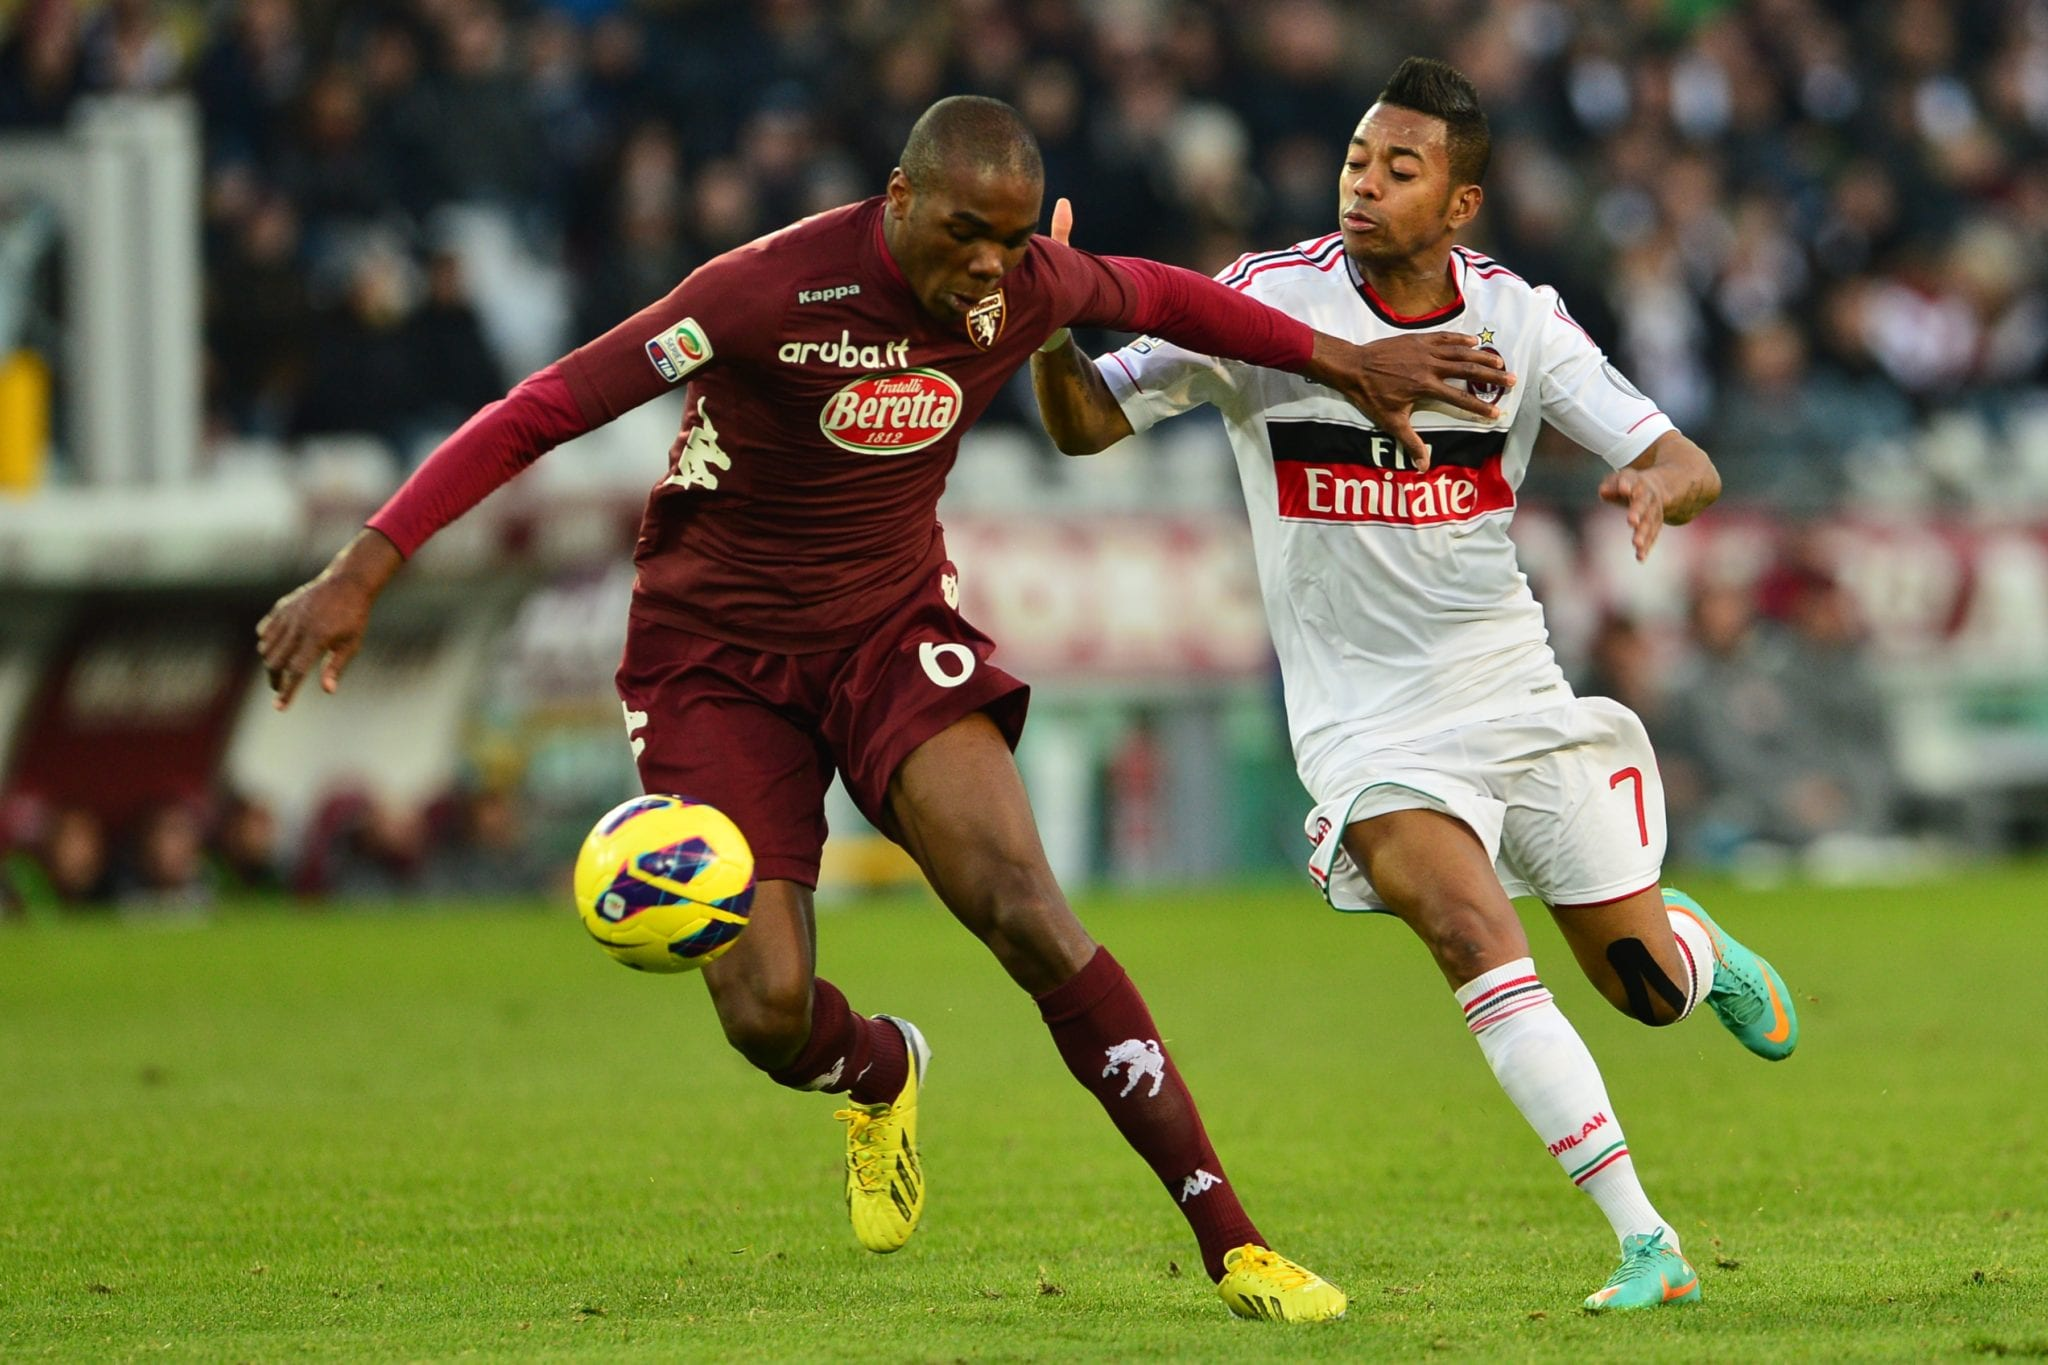 Angelo Ogbonna in azione contro il Milan | ©GIUSEPPE CACACE/AFP/Getty Images